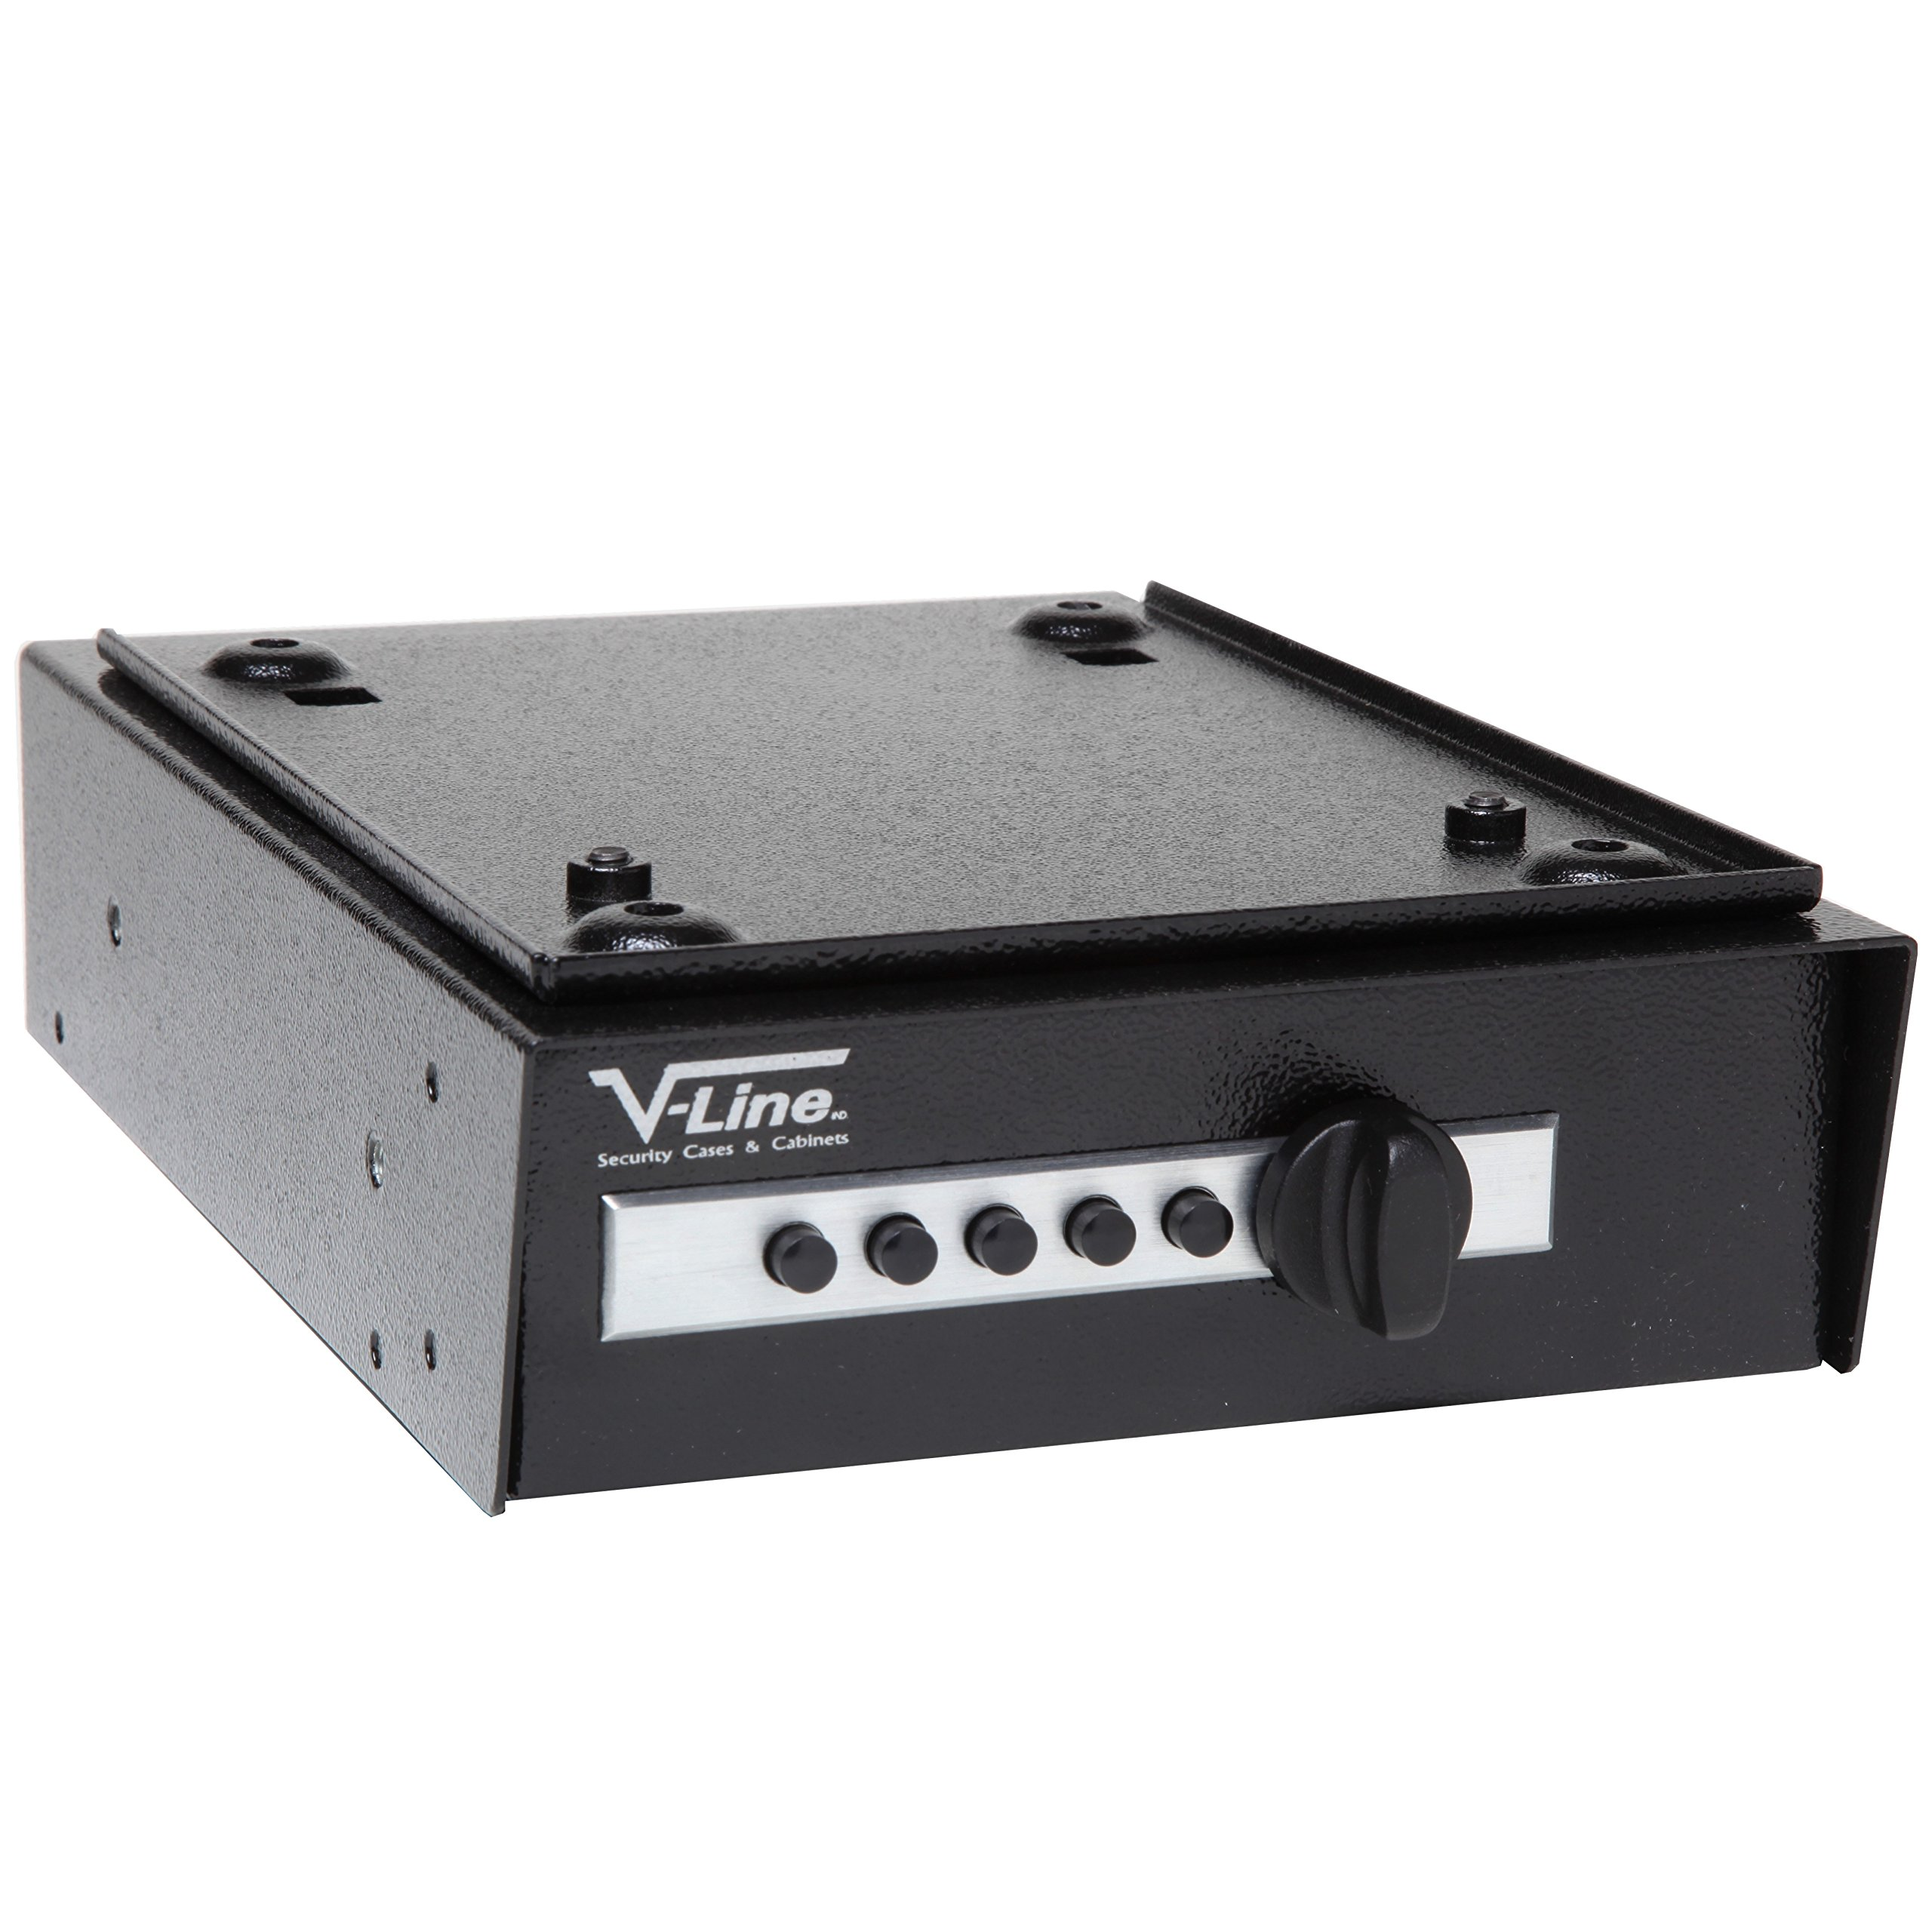 V-Line 2597-S Desk Mate Keyless Security Box with Quick Release Mounting Bracket (Black) by V-Line